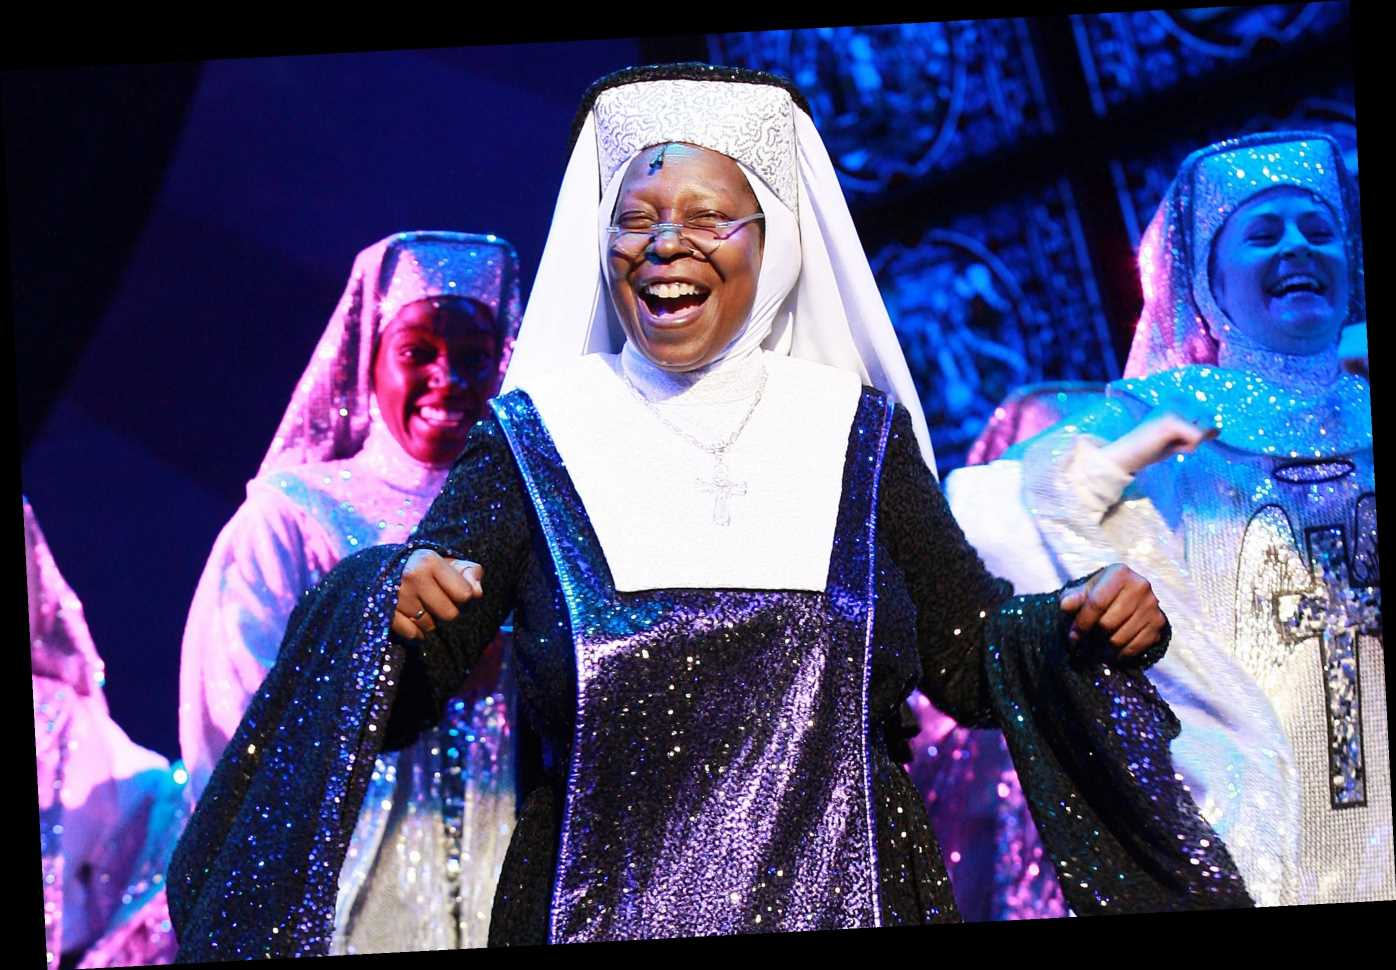 Whoopi Goldberg to star in Sister Act musical with Jennifer Saunders in London